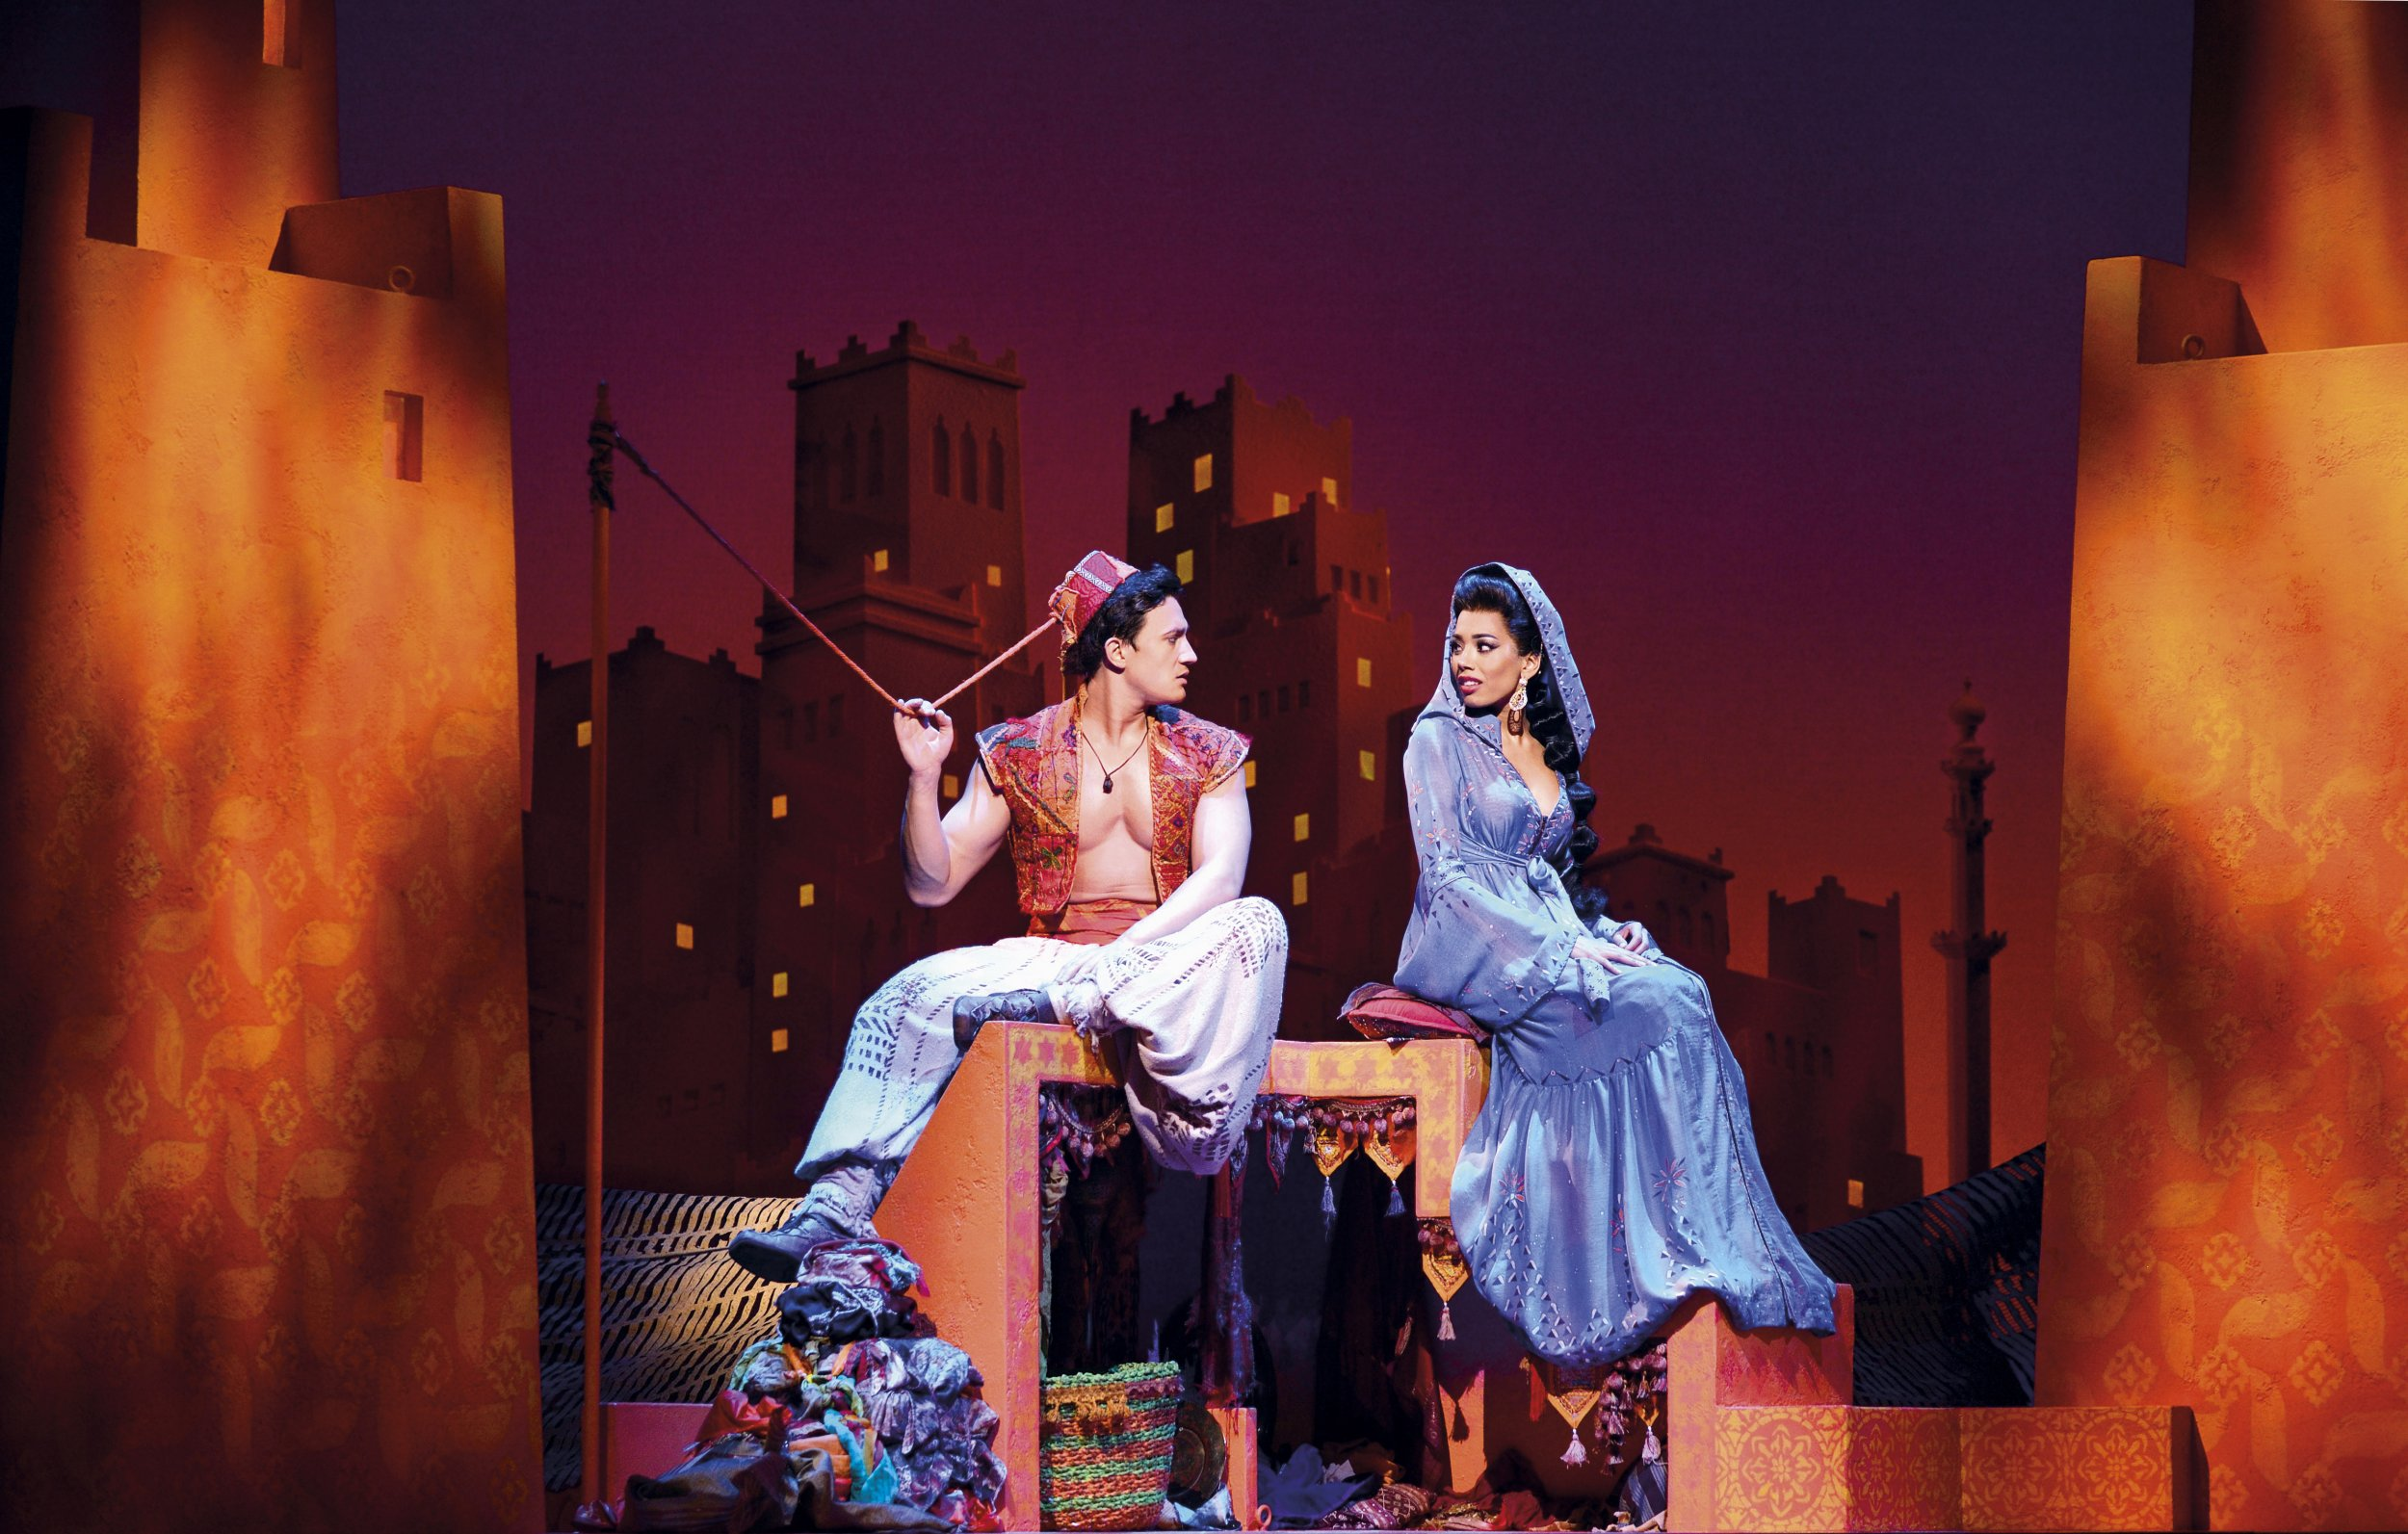 39 aladdin 39 musical opens in london does it live up to. Black Bedroom Furniture Sets. Home Design Ideas